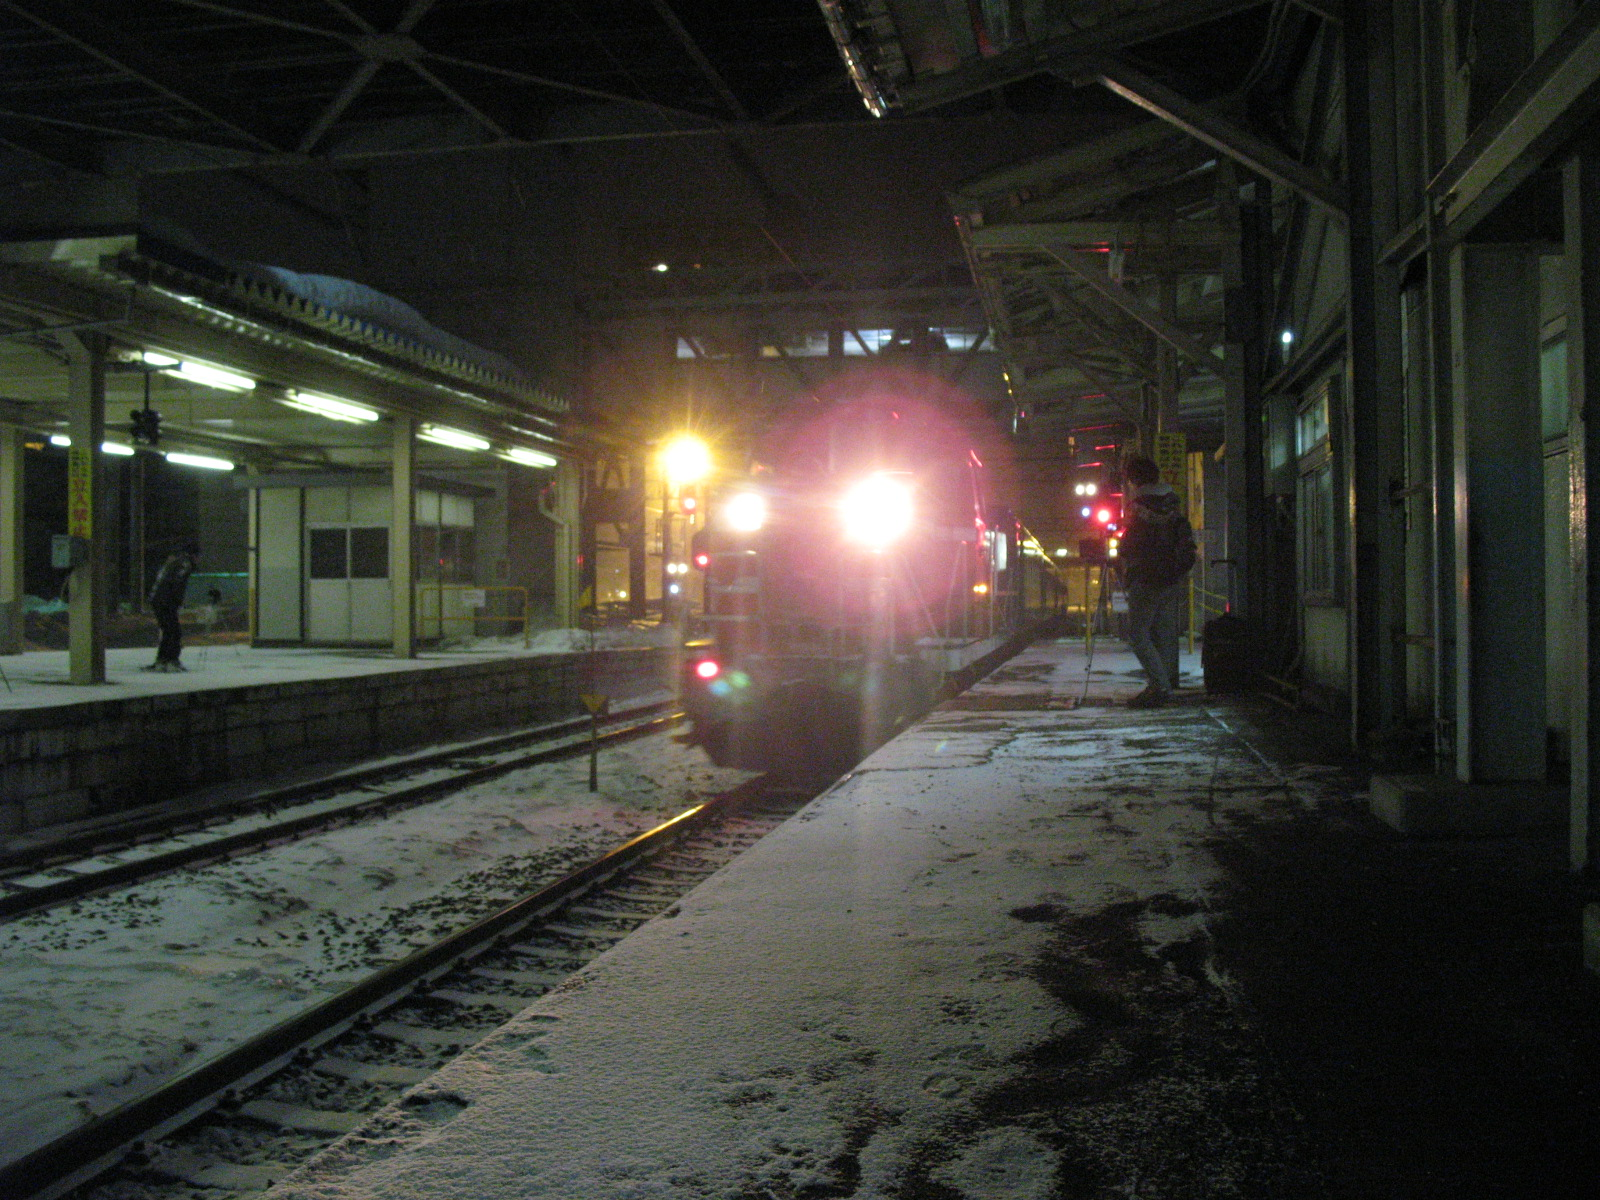 My trip from Aomori to Sapporo on March 19, 2012 by Hamanasu Carpet car.